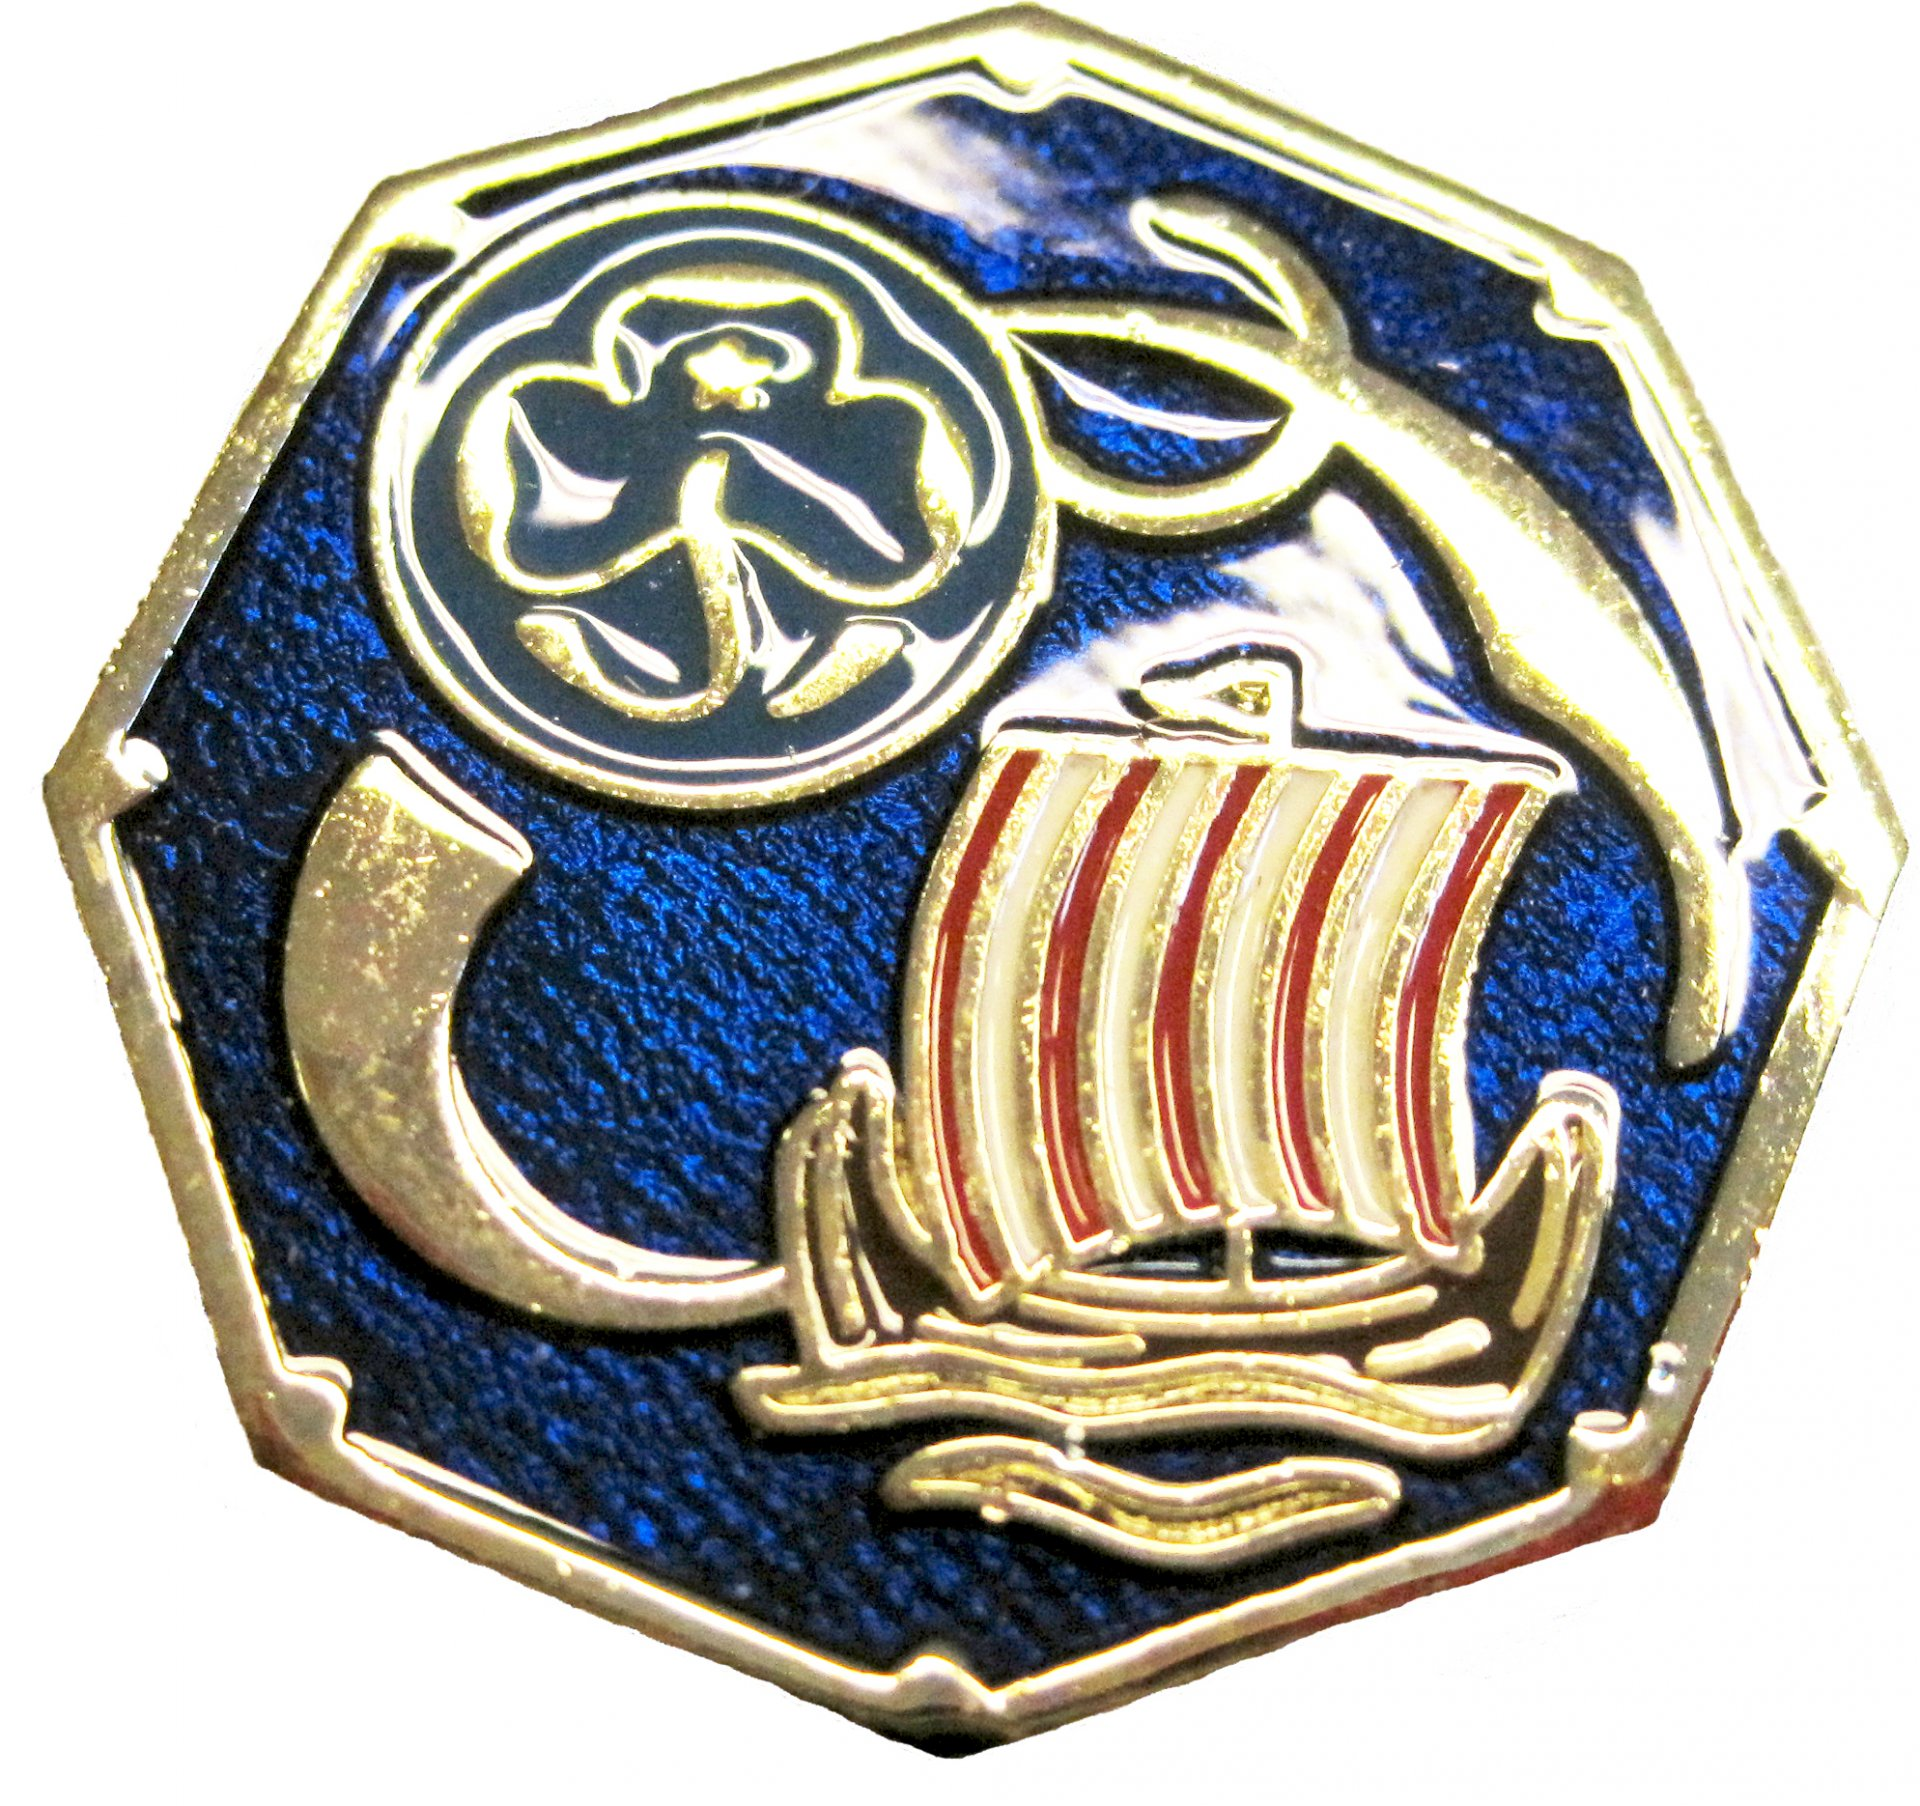 image relating to Anglia Brooch nomination form